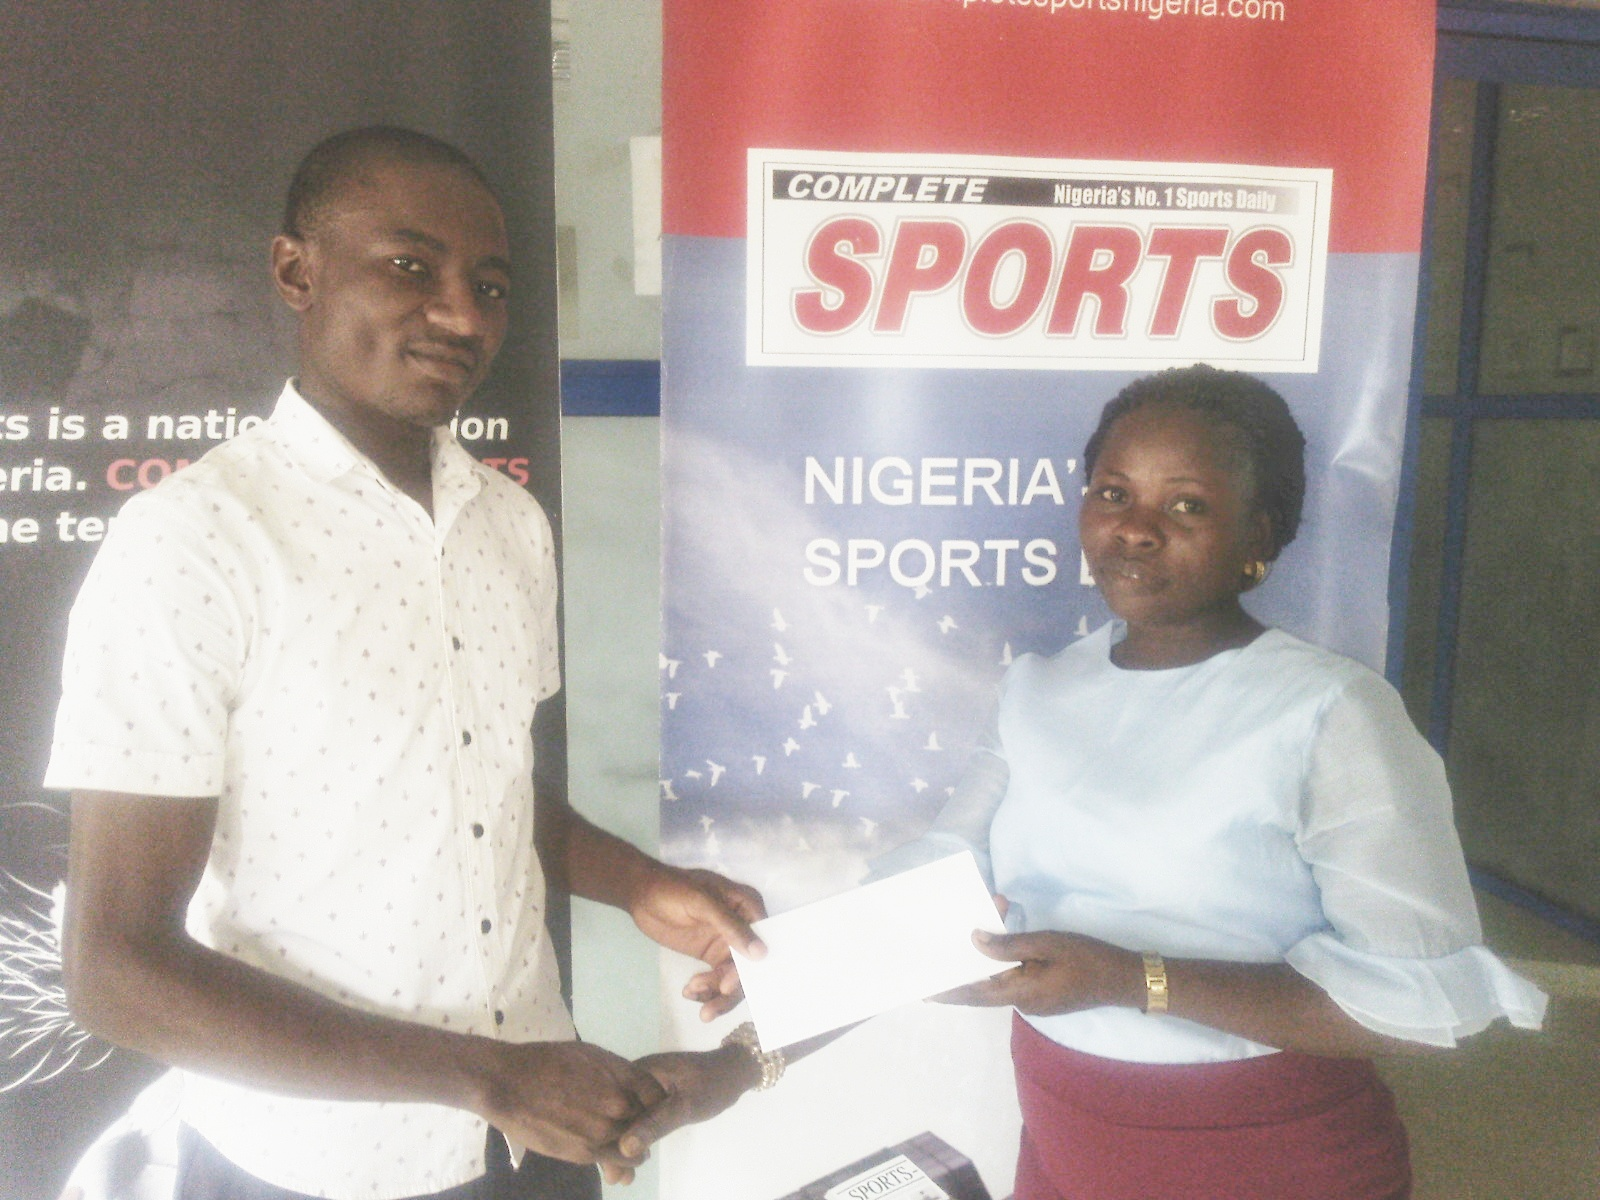 Winner Collects Cash Prize In Complete Sports' Predict And Win Competition